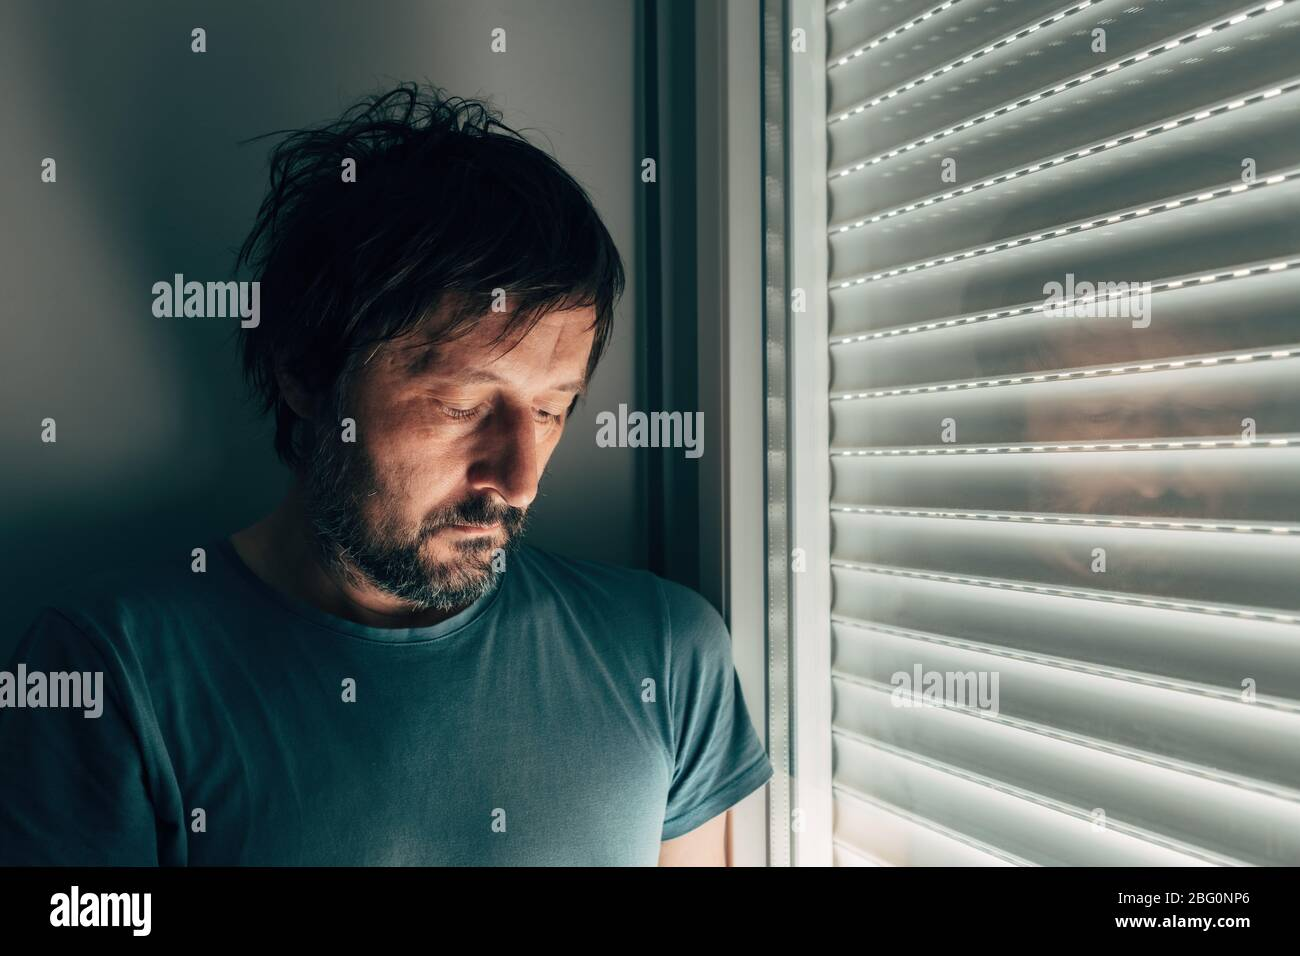 Sulking man by the window with shutters rolled down, portrait of disappointed male person Stock Photo